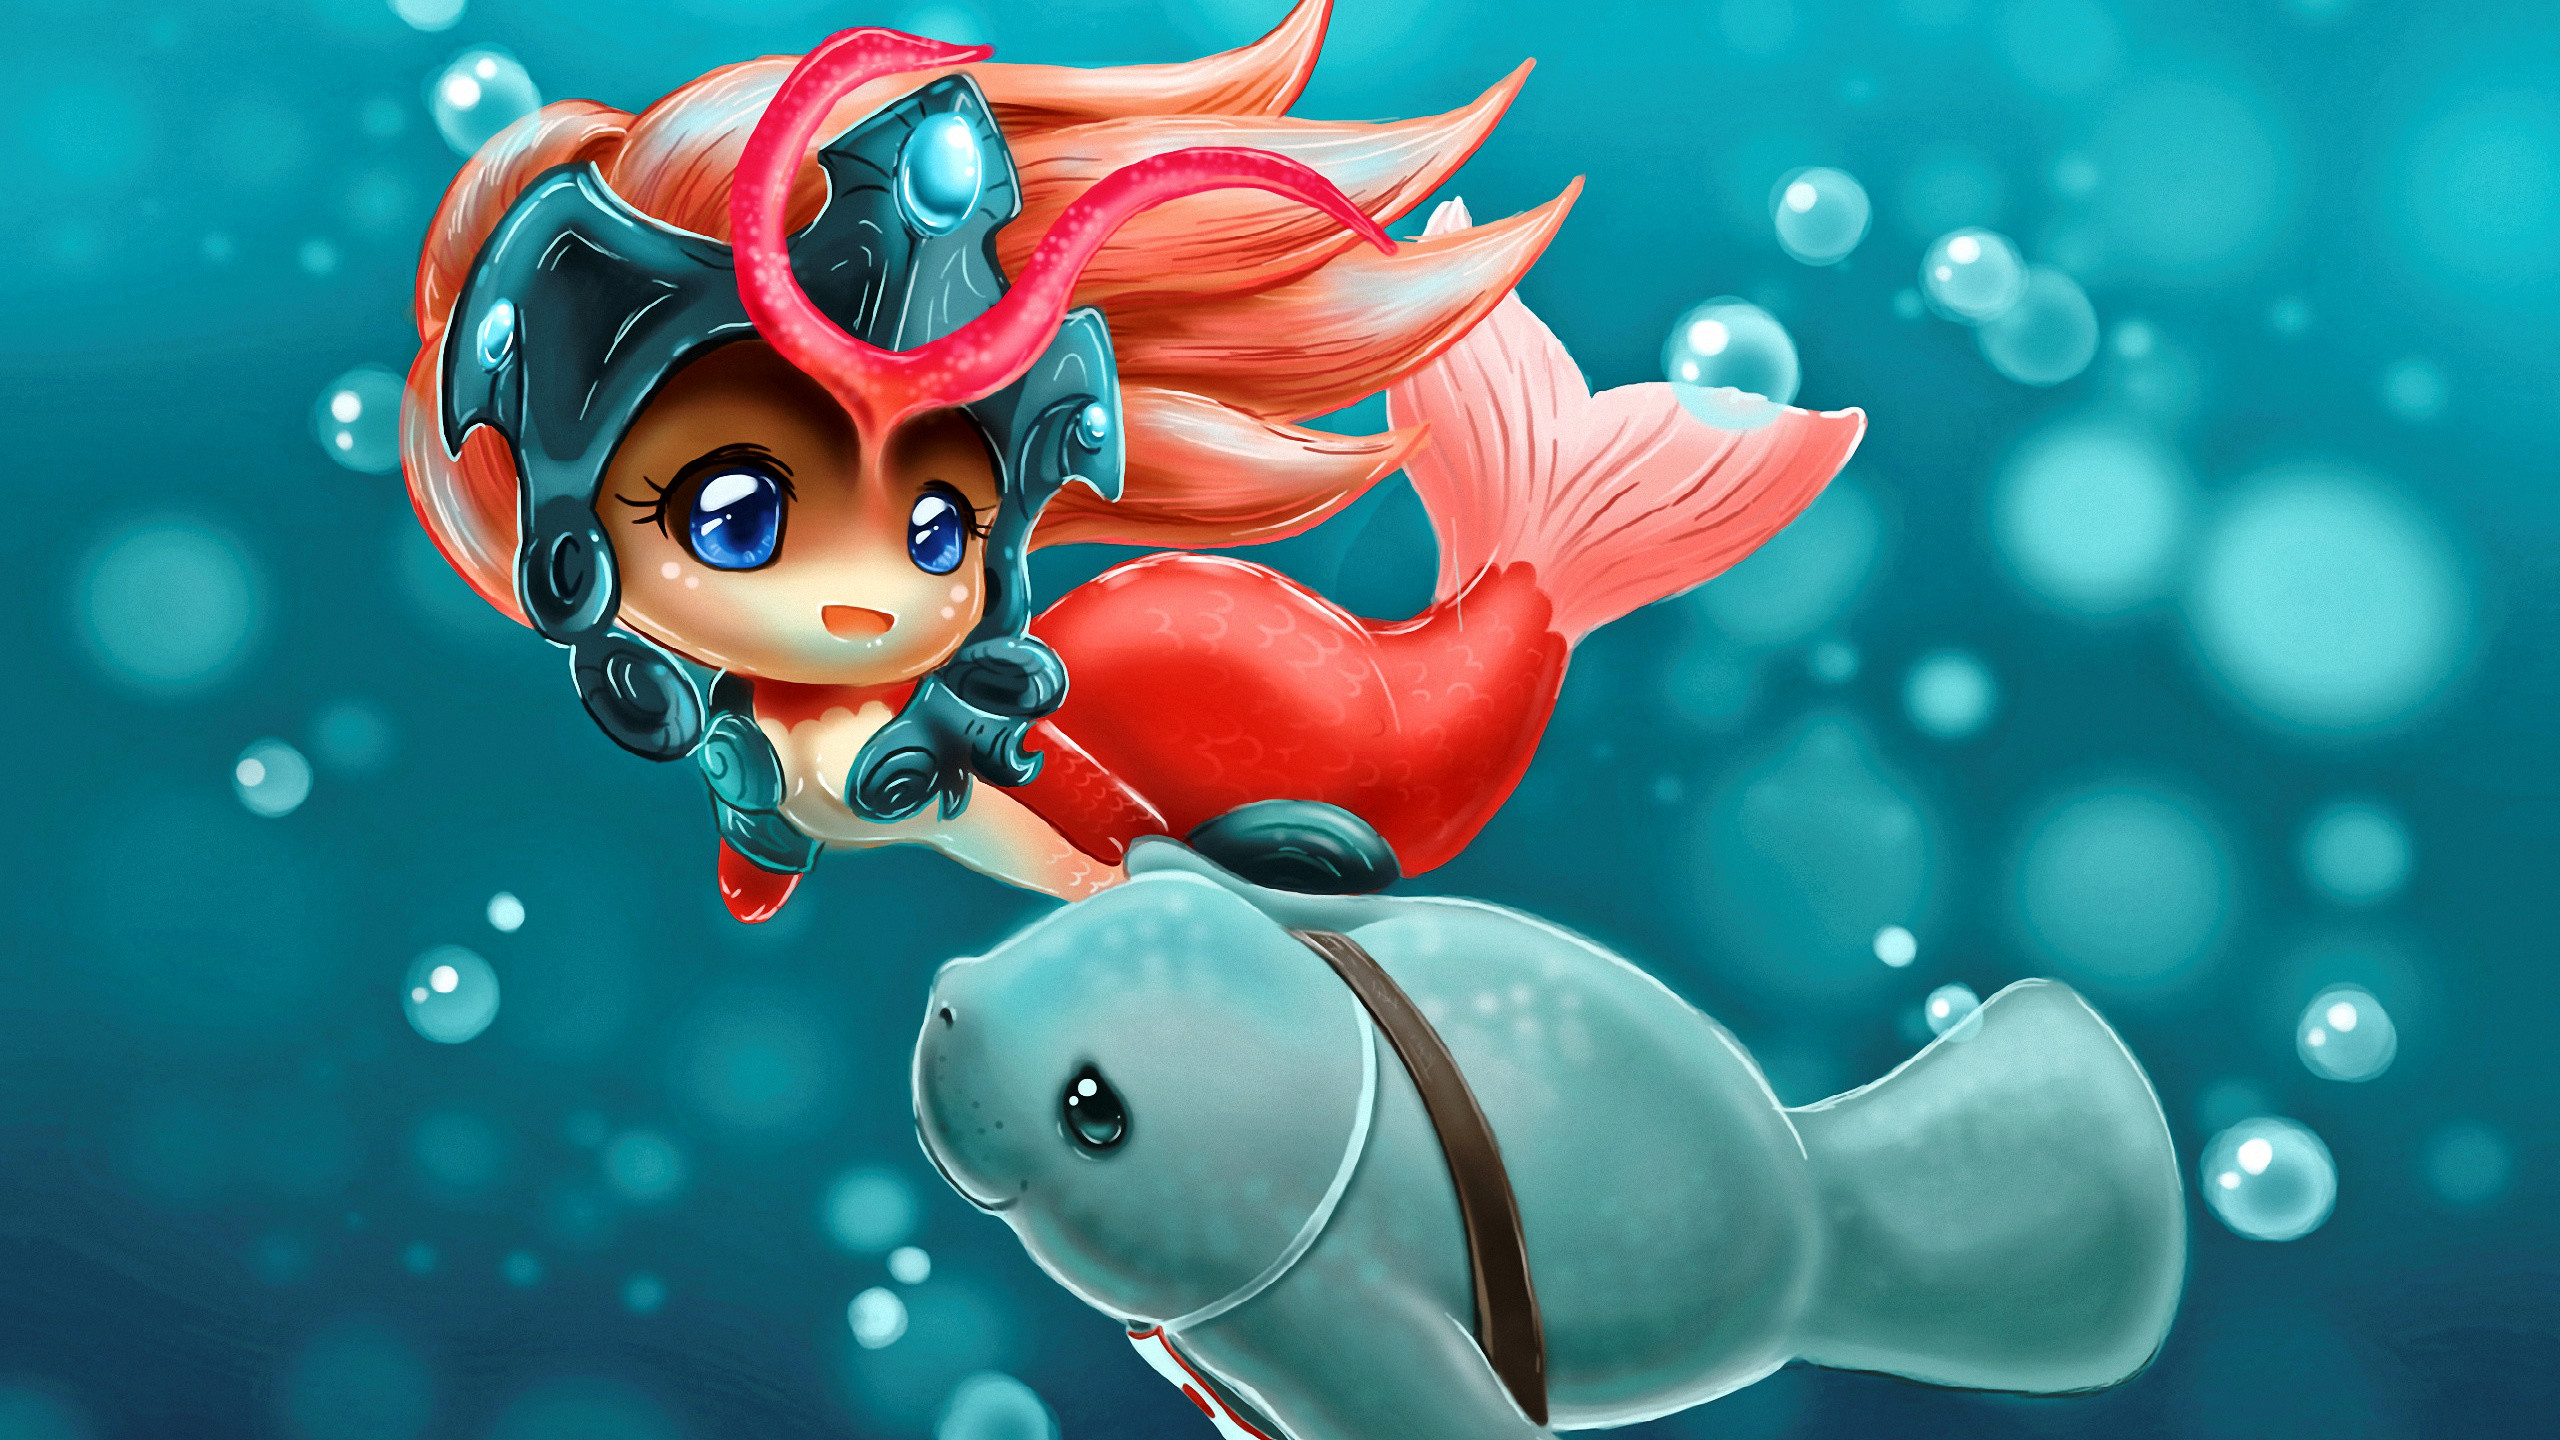 2560x1440 Computerspiel League Of Legends Nami Mermaid Anime Urf Wallpaper